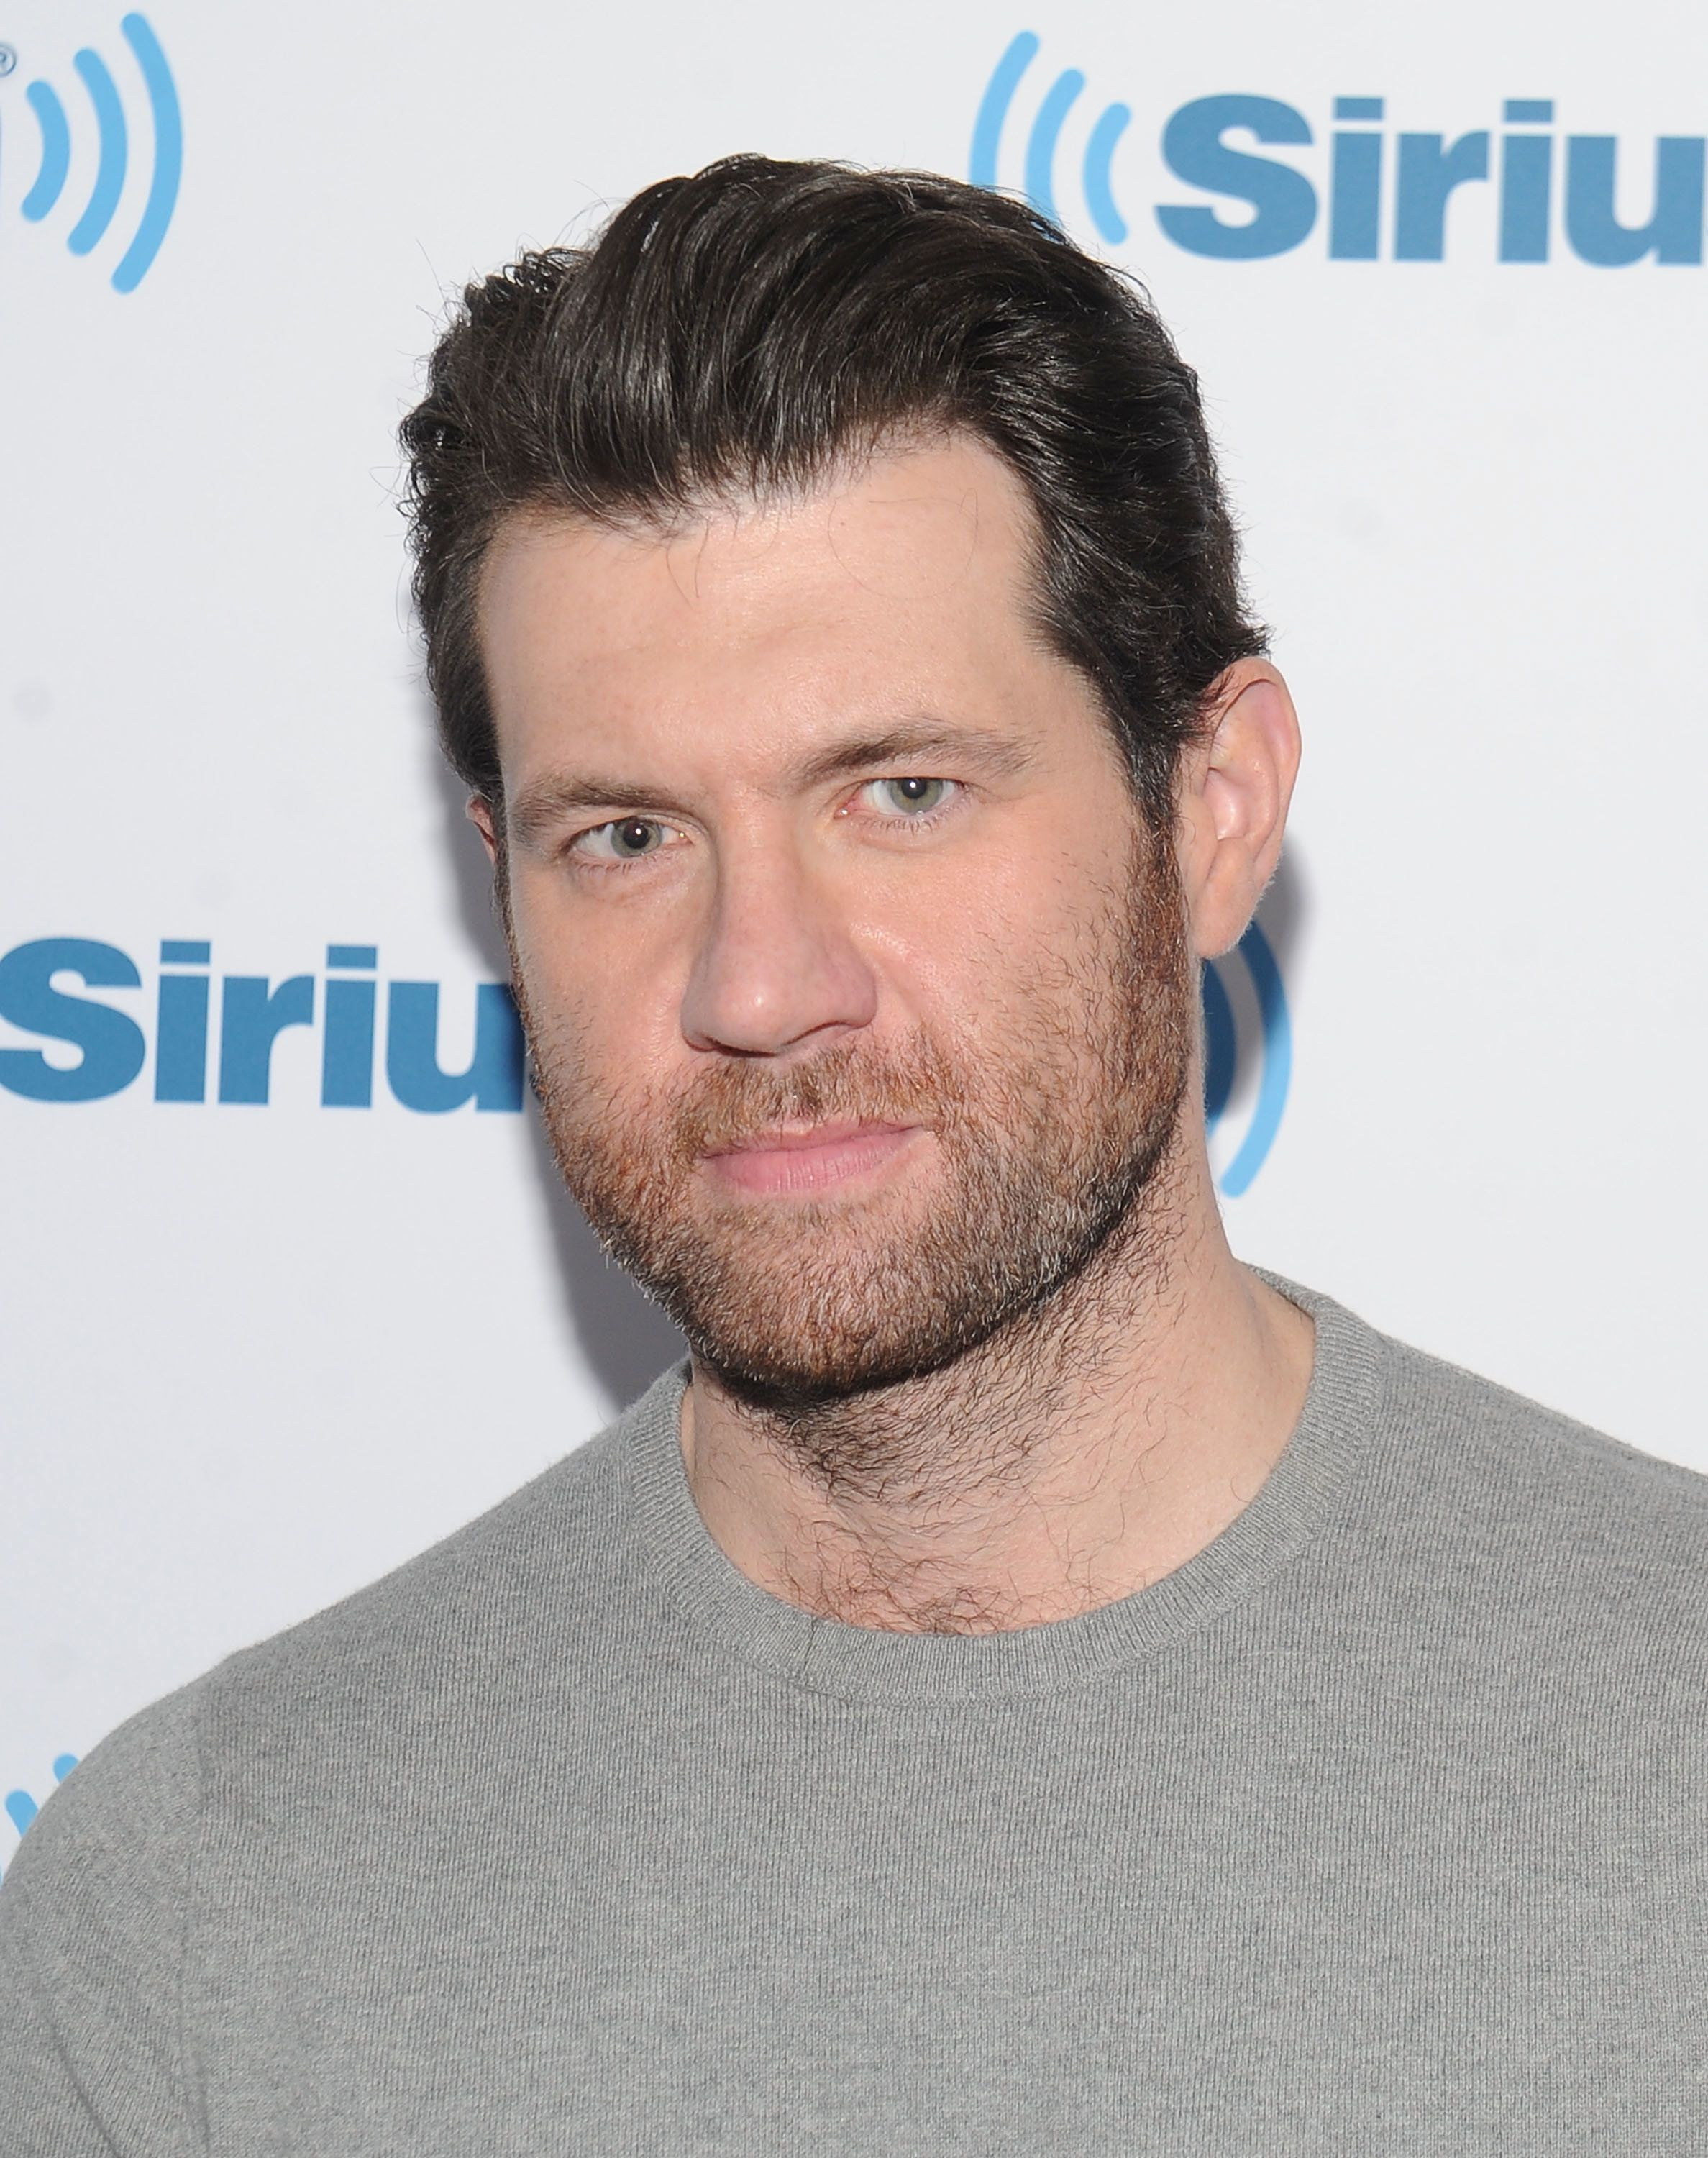 NEW YORK, NY - FEBRUARY 07:  Billy Eichner visits SiriusXM at SiriusXM Studios on February 7, 2018 in New York City.  (Photo by Brad Barket/Getty Images)